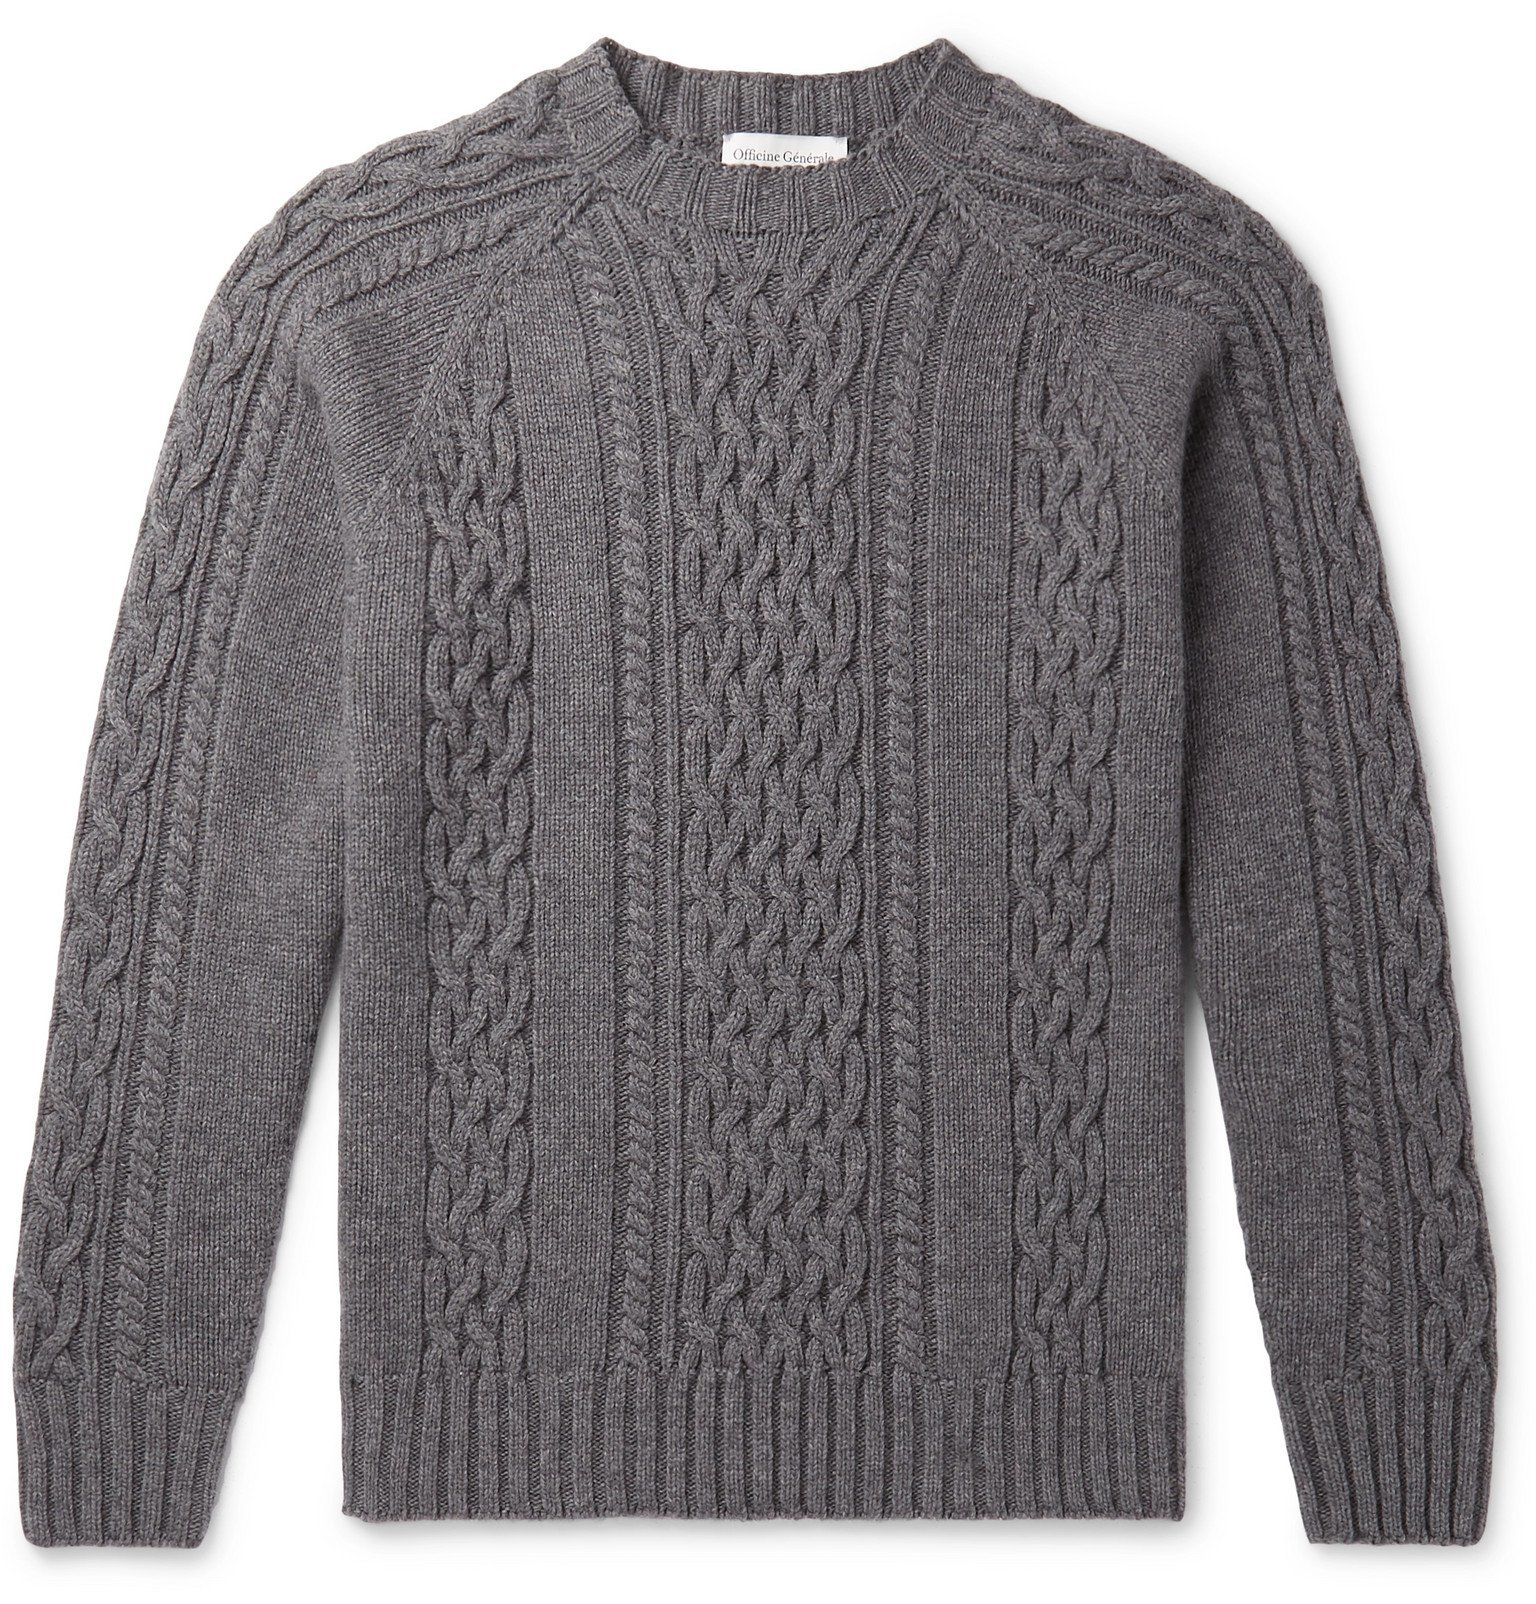 Officine Generale - Cable-Knit Mélange Wool Sweater - Gray